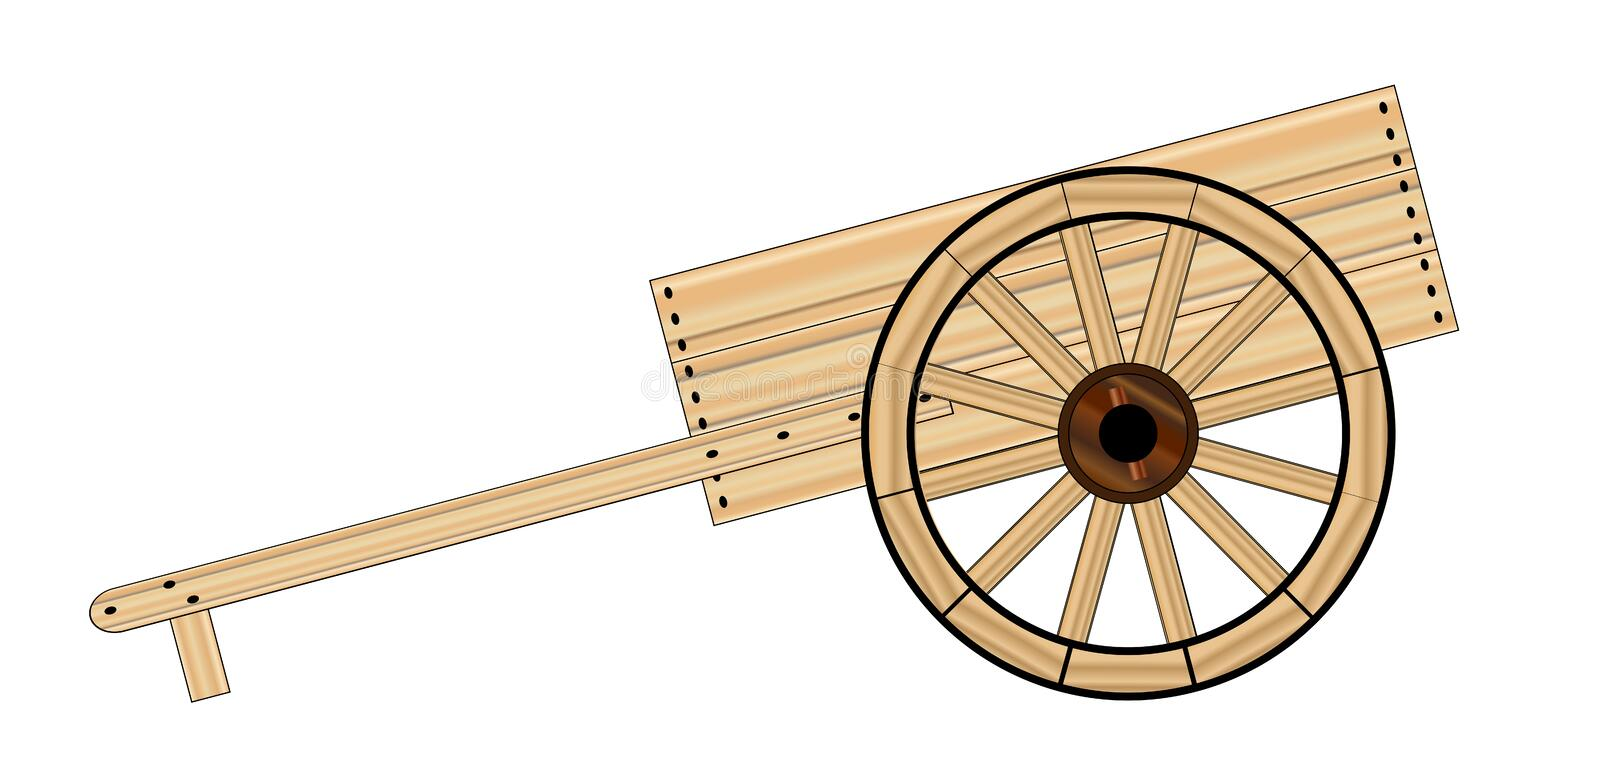 Mormon Hand Cart stock illustration